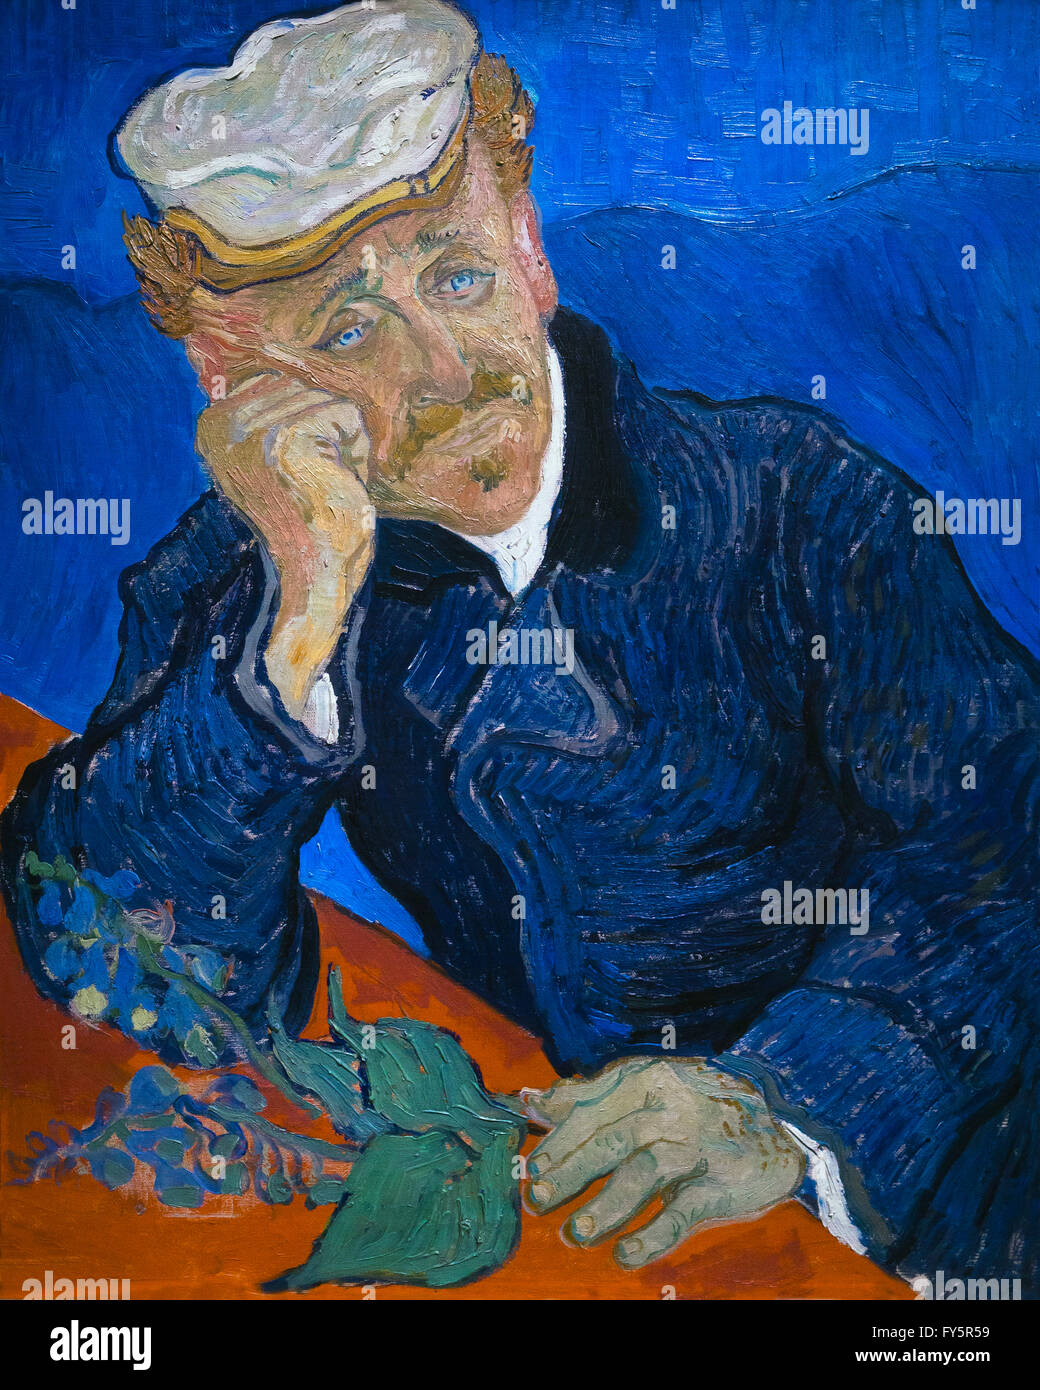 Dr Paul Gachet, by Vincent van Gogh, 1890 Musee D'Orsay, Paris, France, Europe - Stock Image